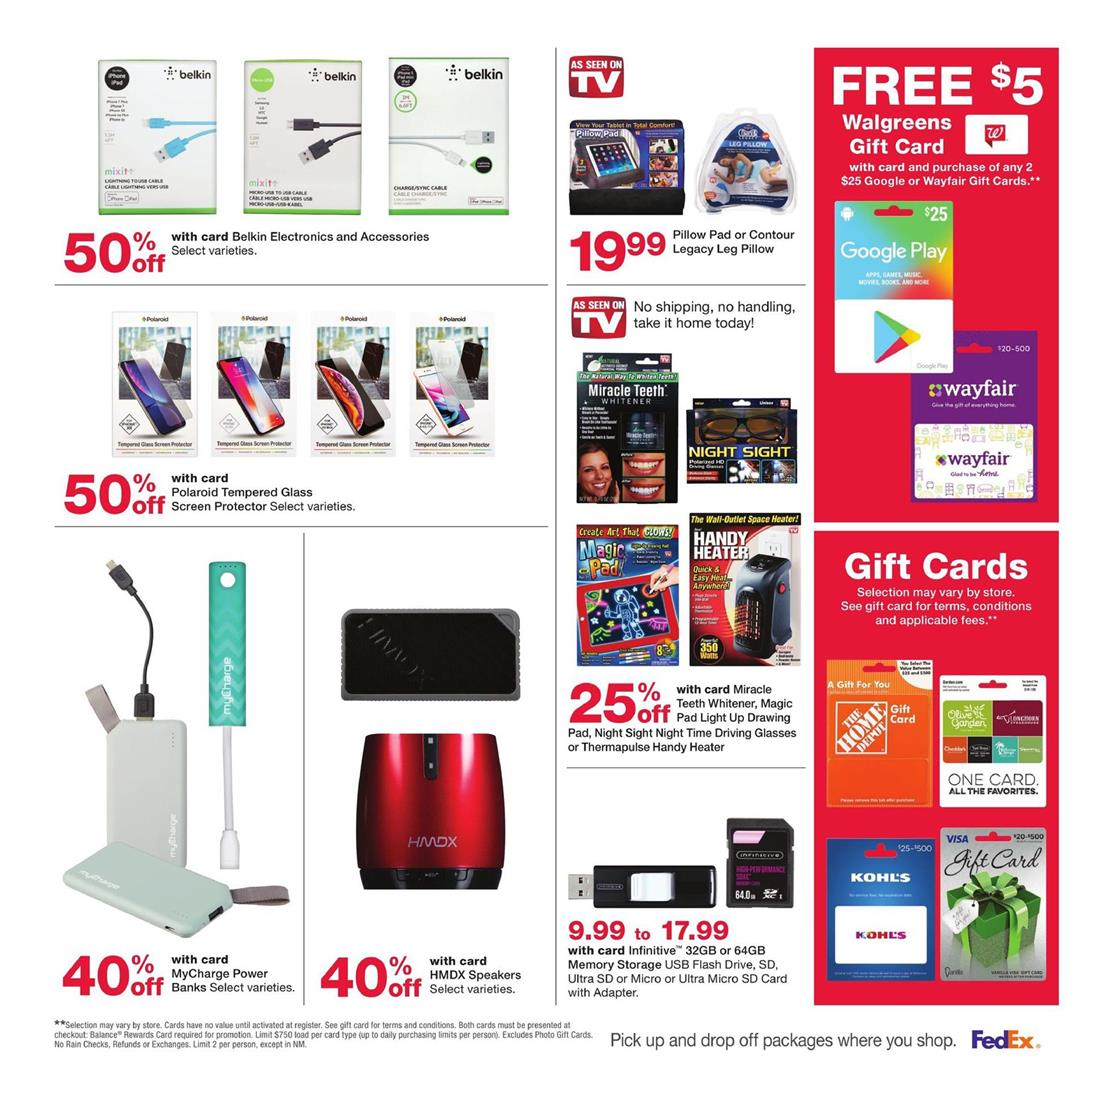 Walgreens Holiday Gifts Dec 8 - 14, 2019 Weekly Ad